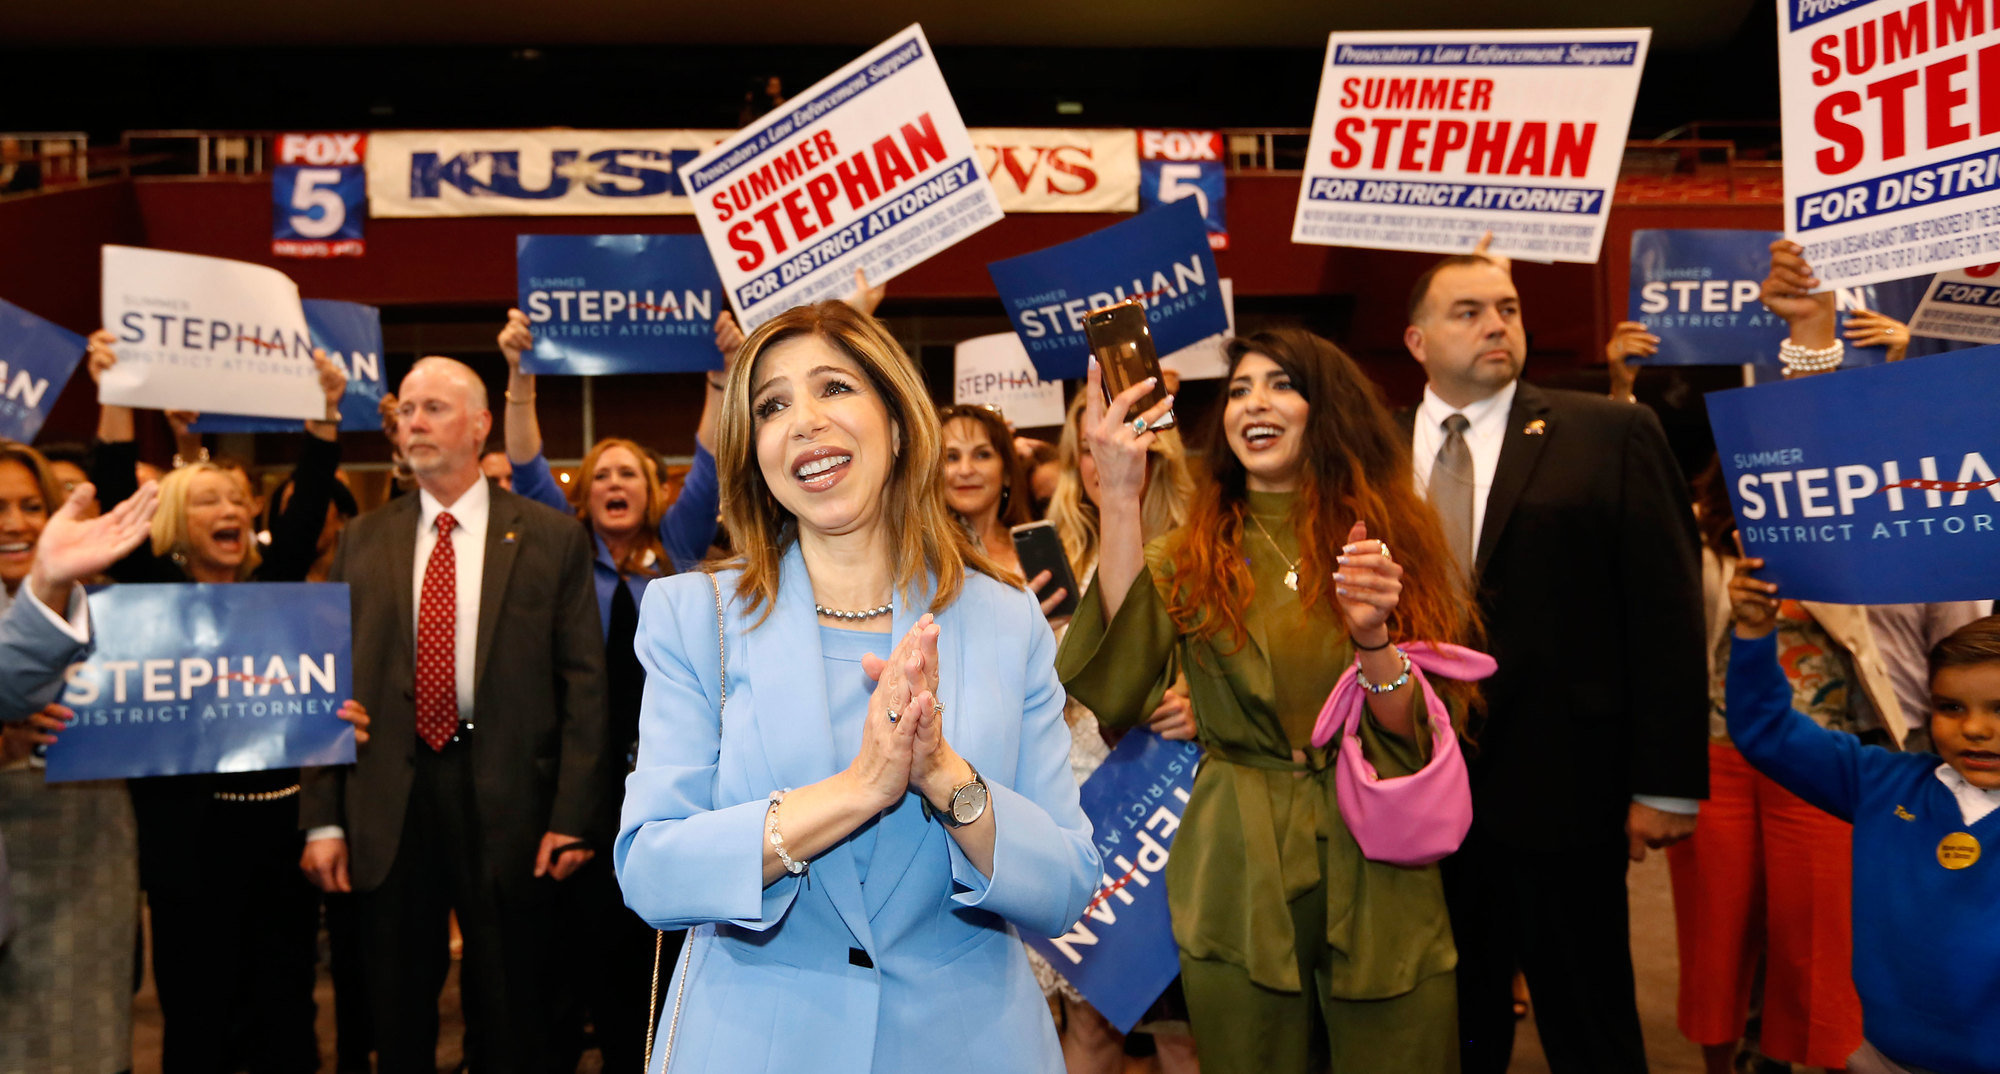 District Attorney Summer Stephan in San Diego on Tuesday. Stephan appeared to hold off a challenge from a Soros-backed candidate in San Diego's primary.